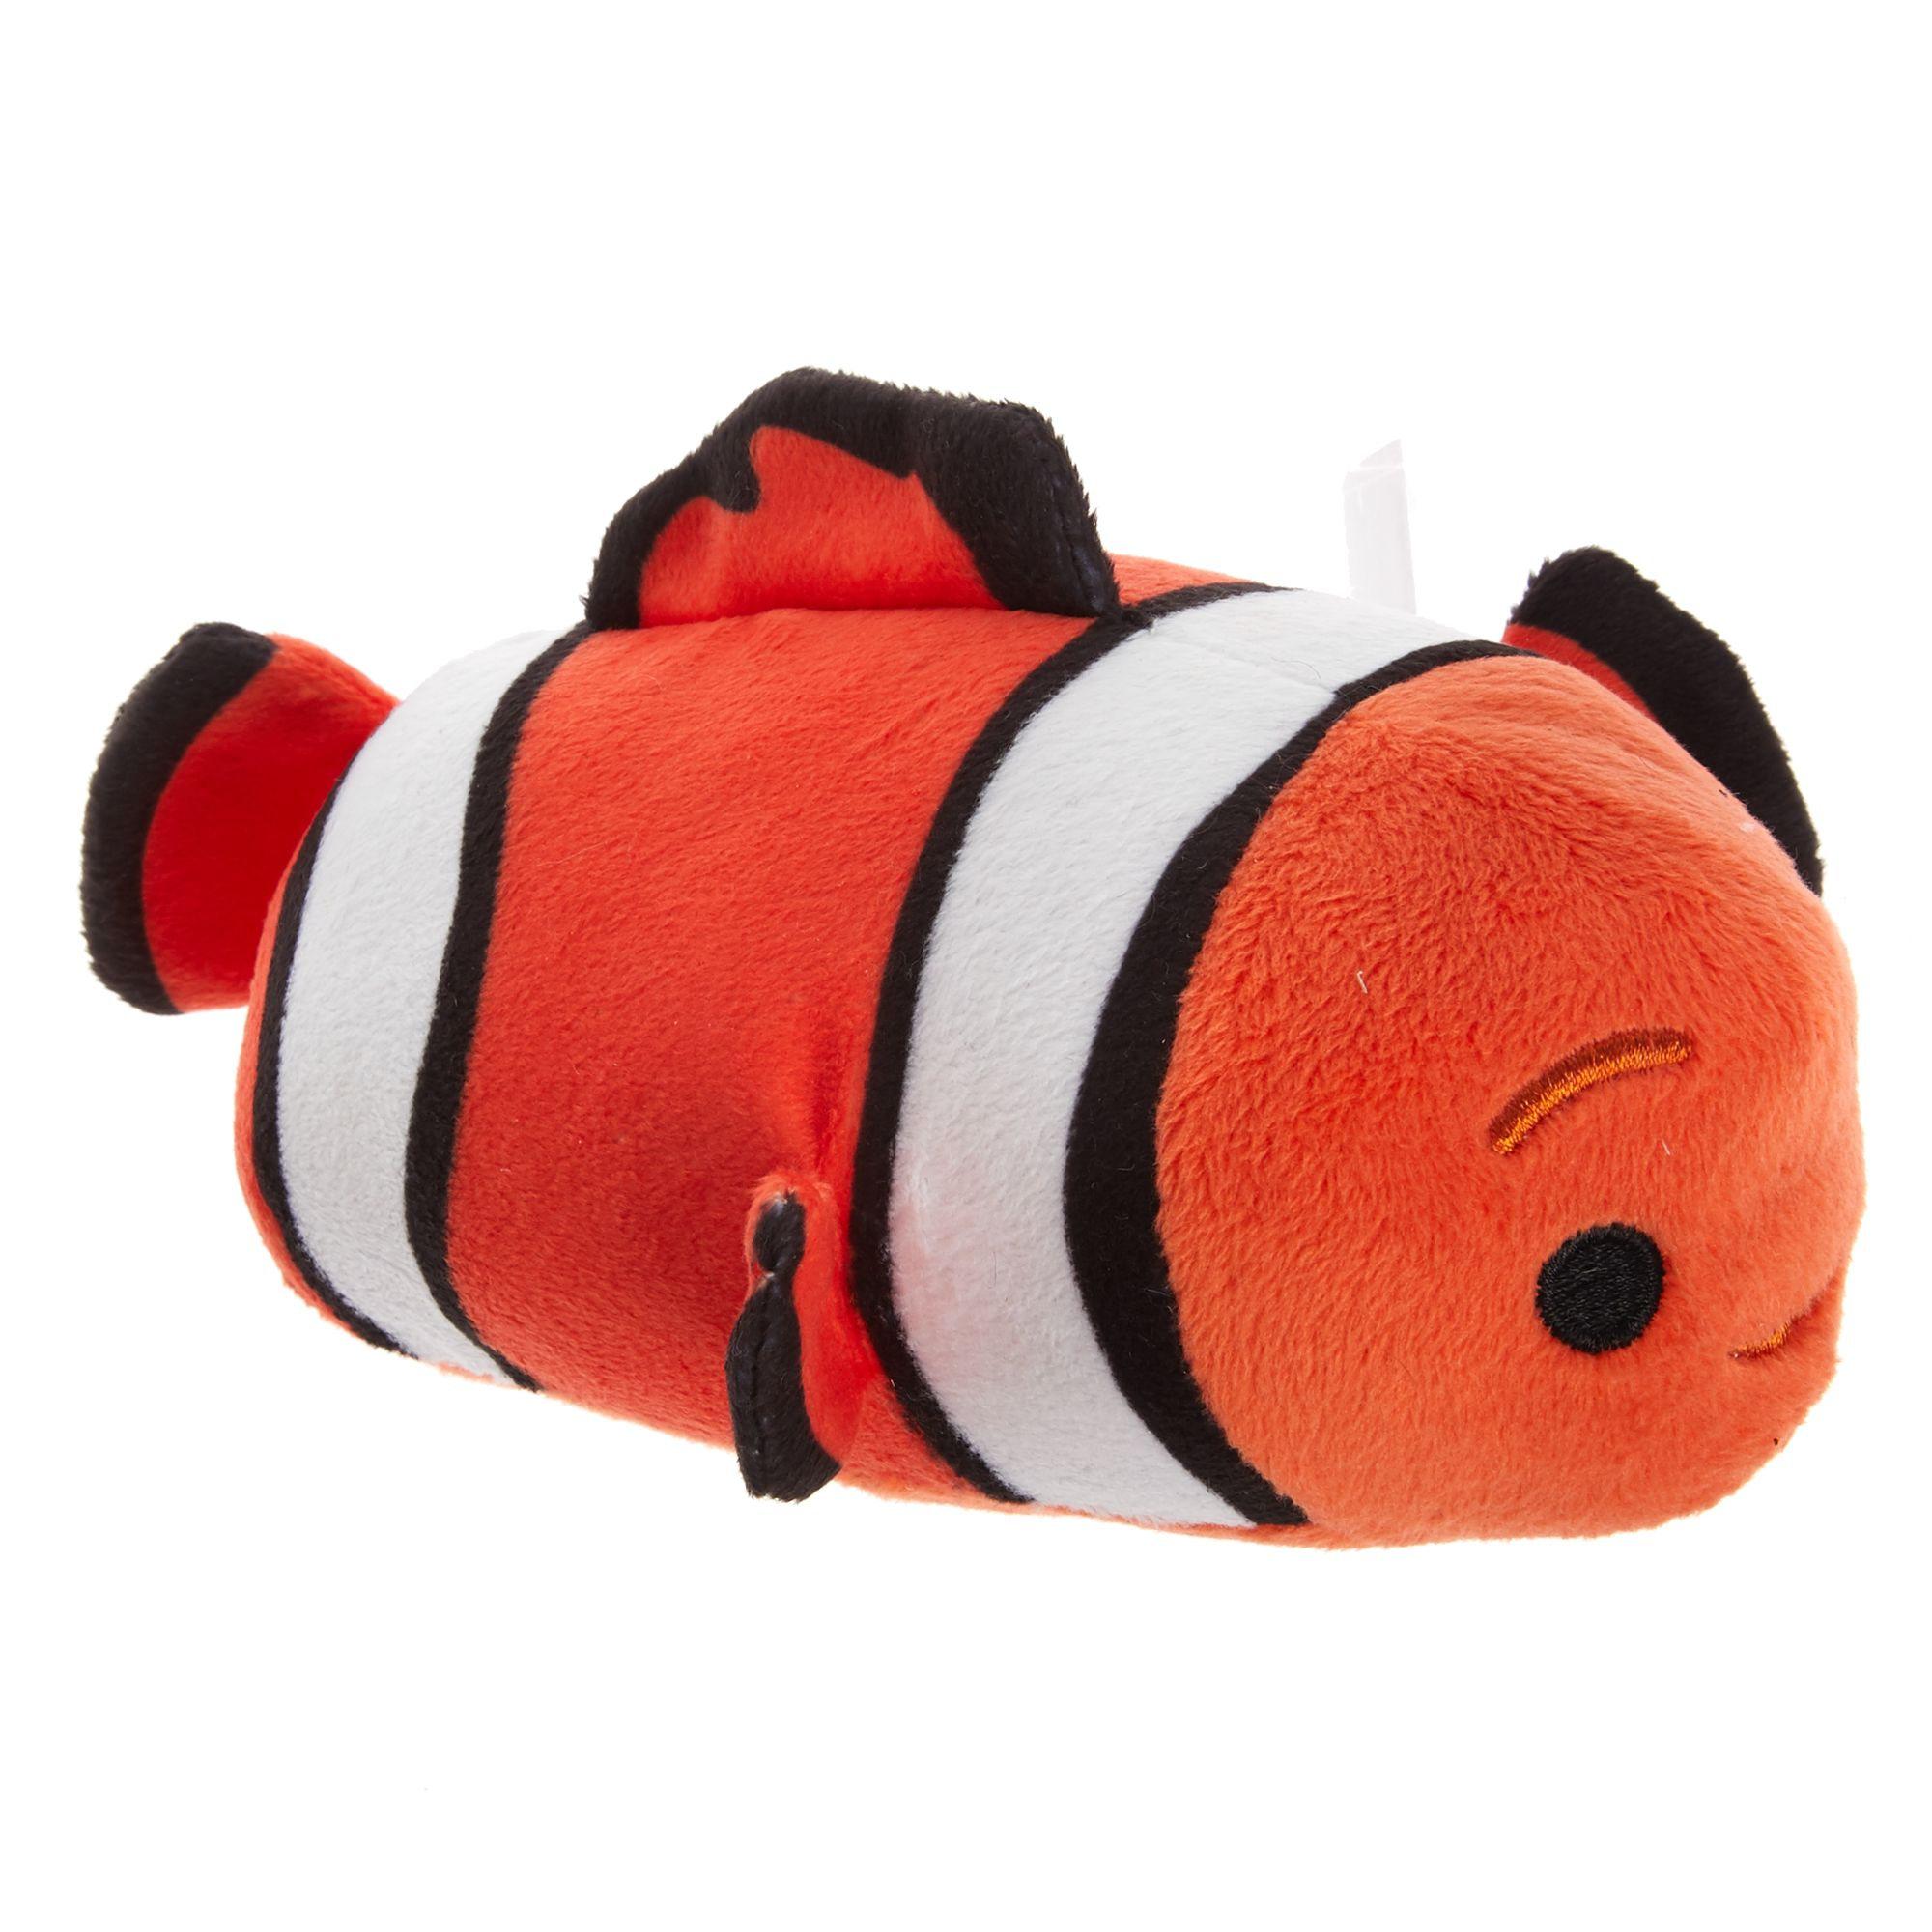 "Disney Nemo ""Tsum Tsum"" Dog Toy - Plush, Squeaker size: Medium 5274224"